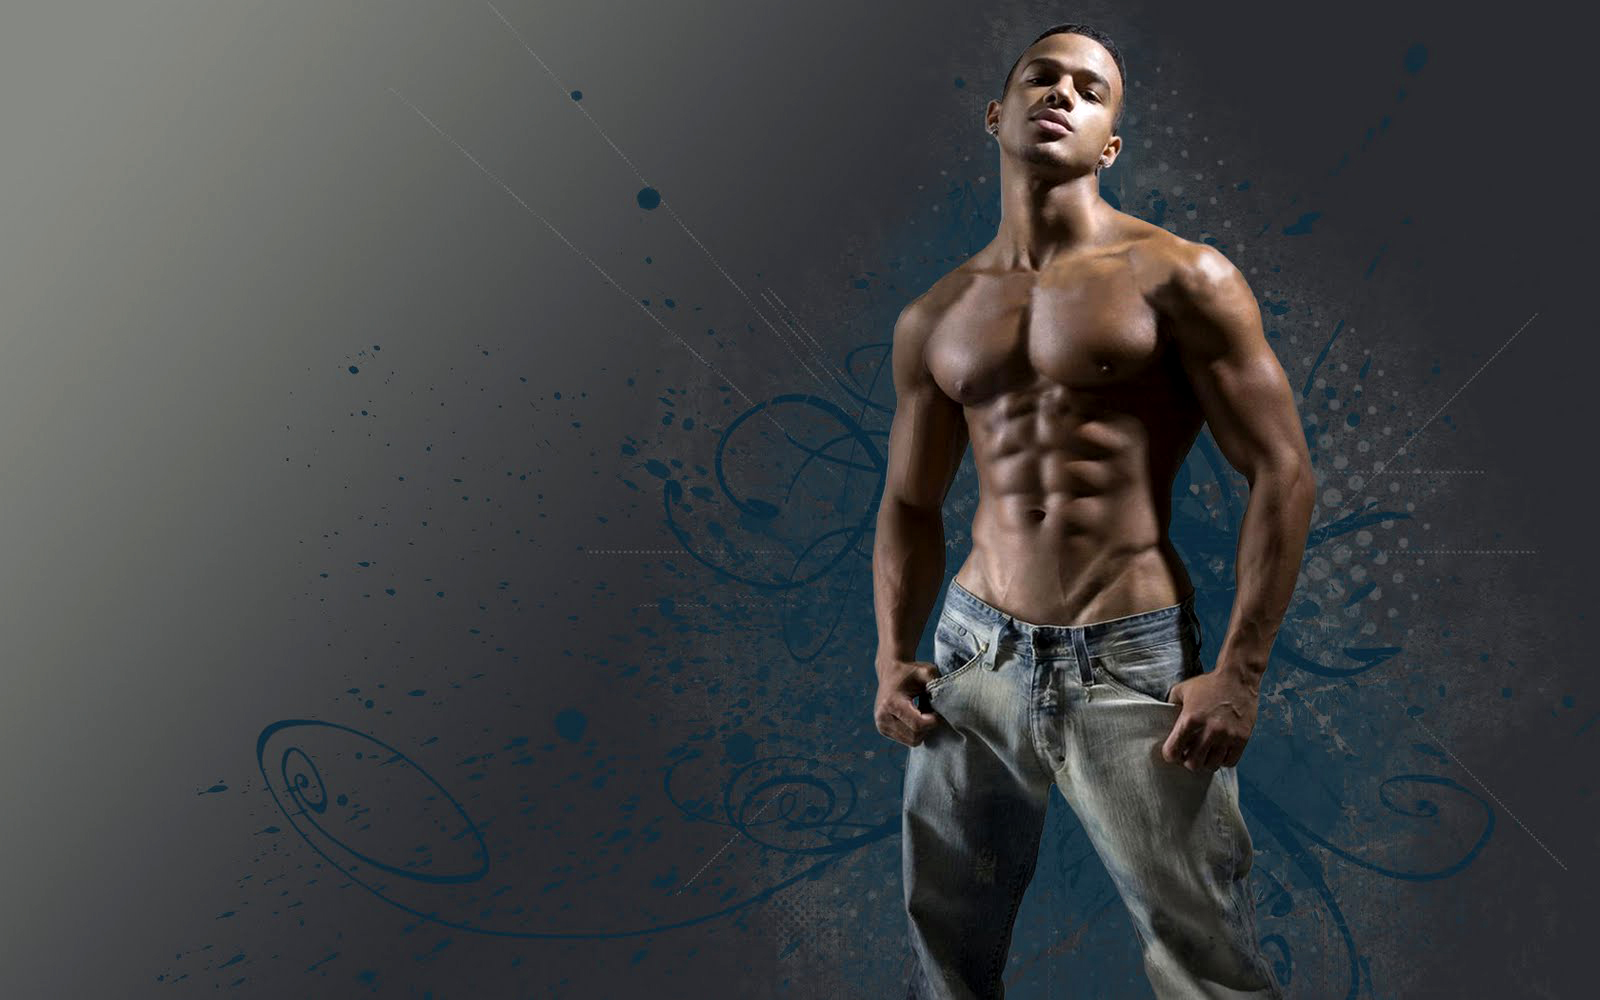 jeans Men male models HD Wallpaper